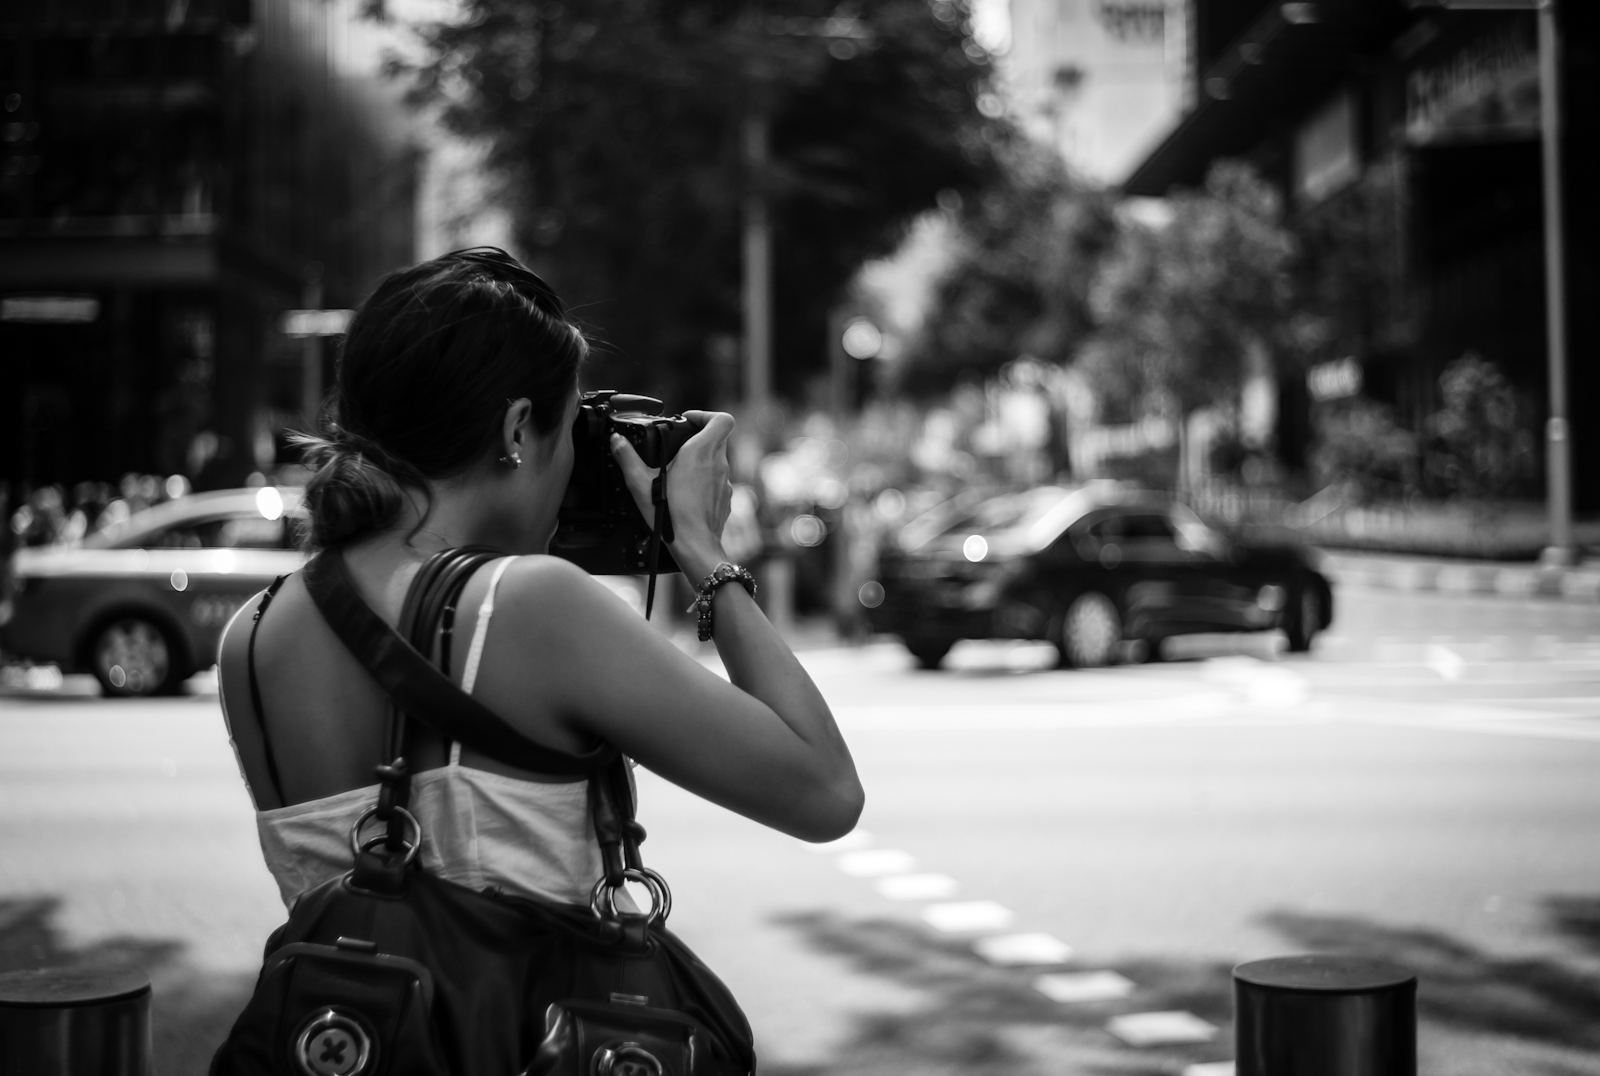 Street photography - Woman shooting with a DSLR camera